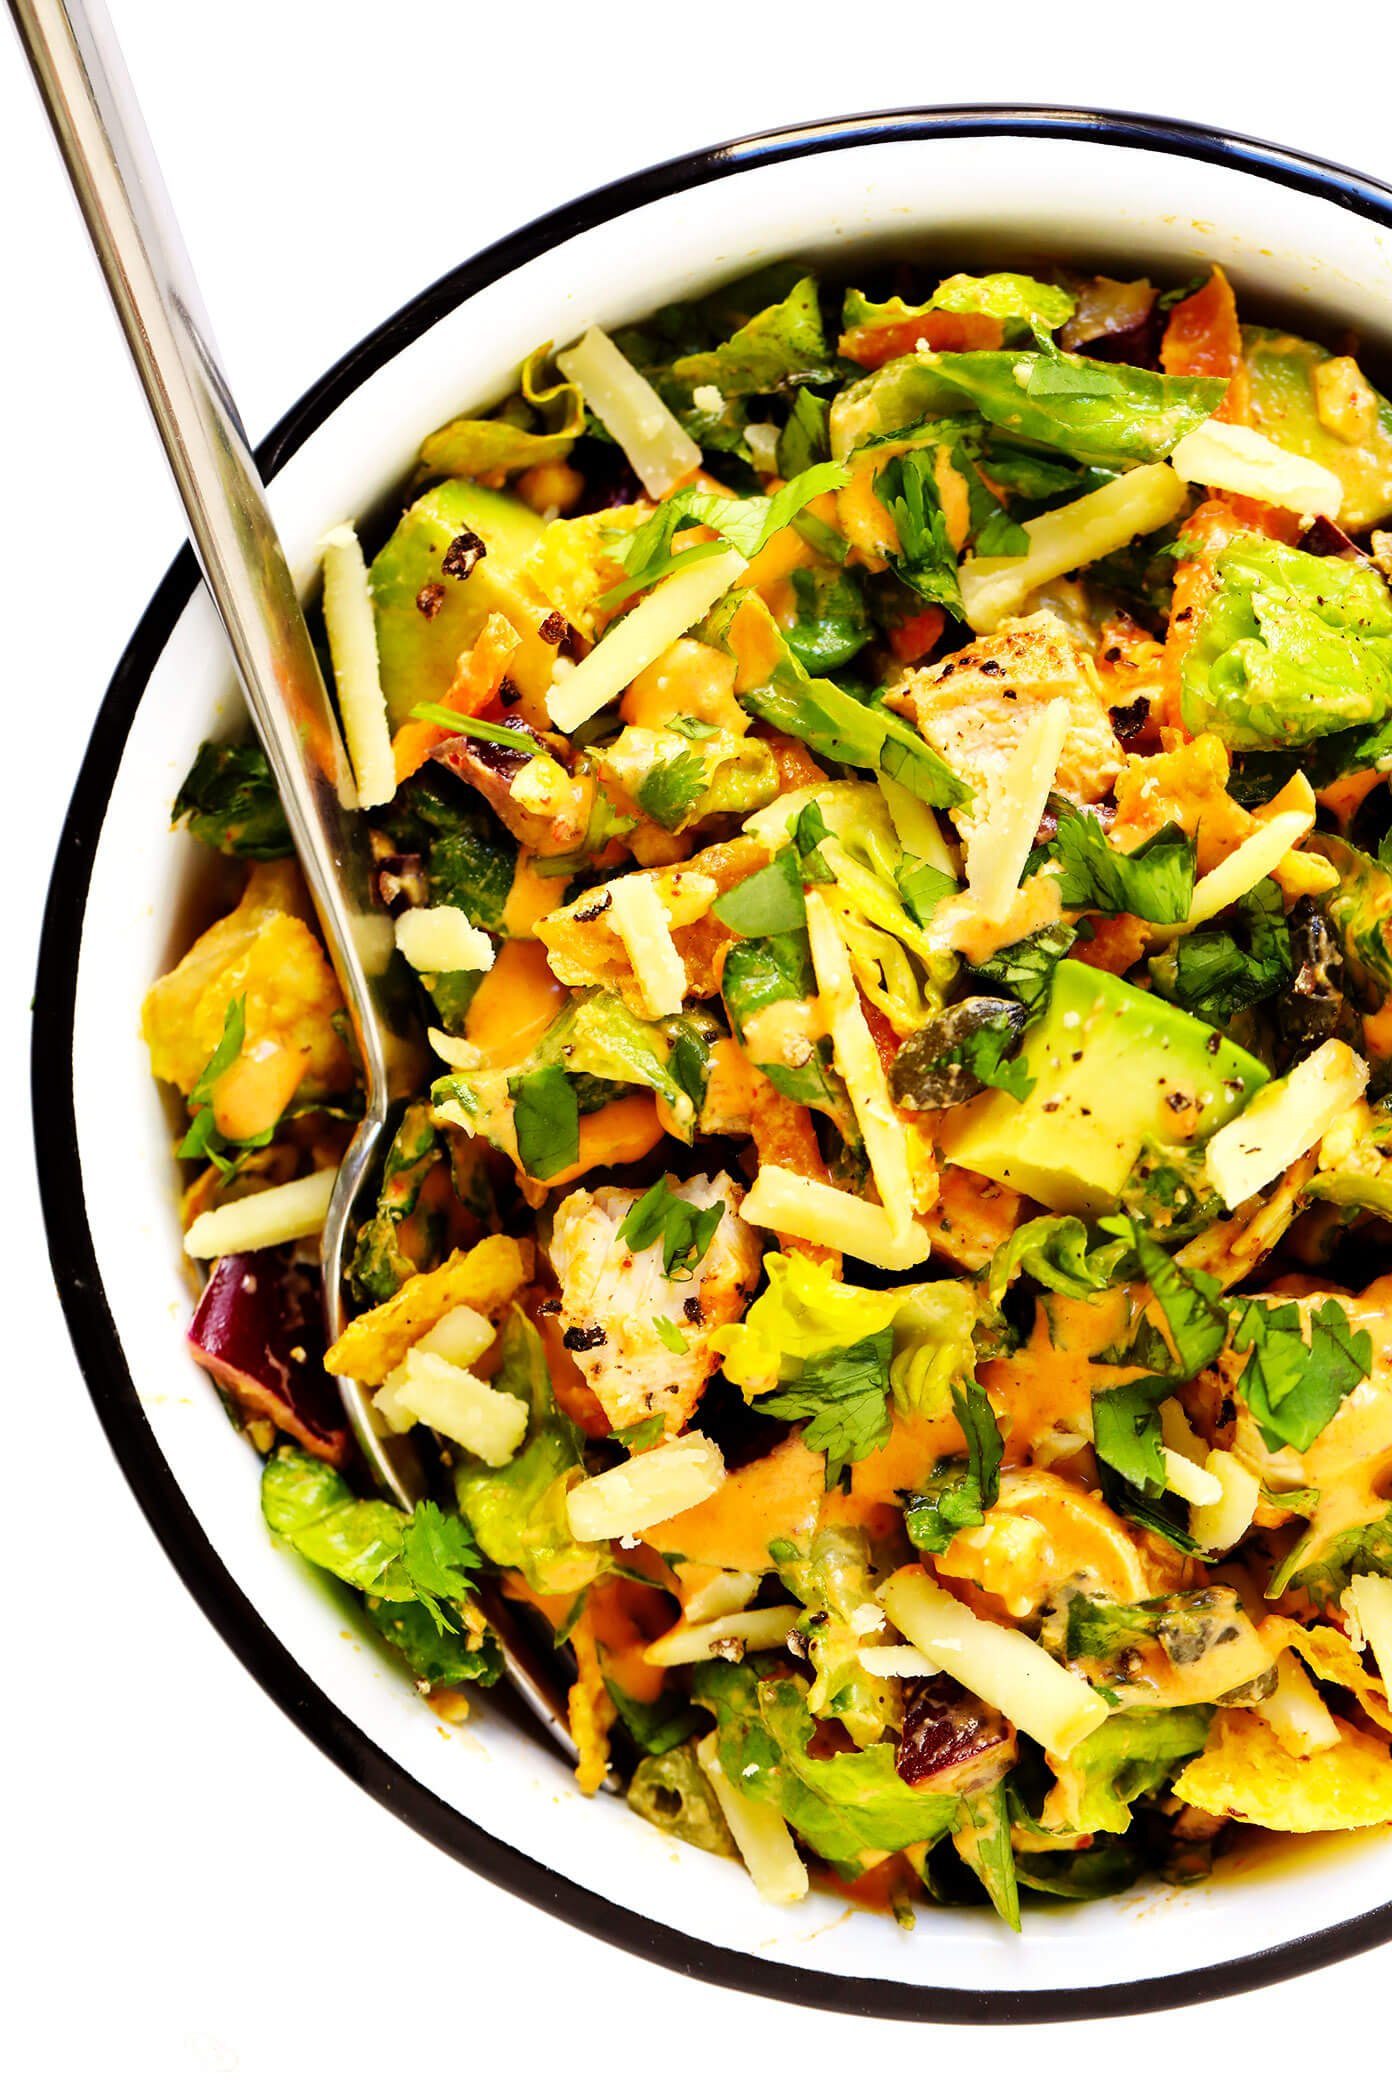 Chopped Salad with Chipotle Dressing Mixed In